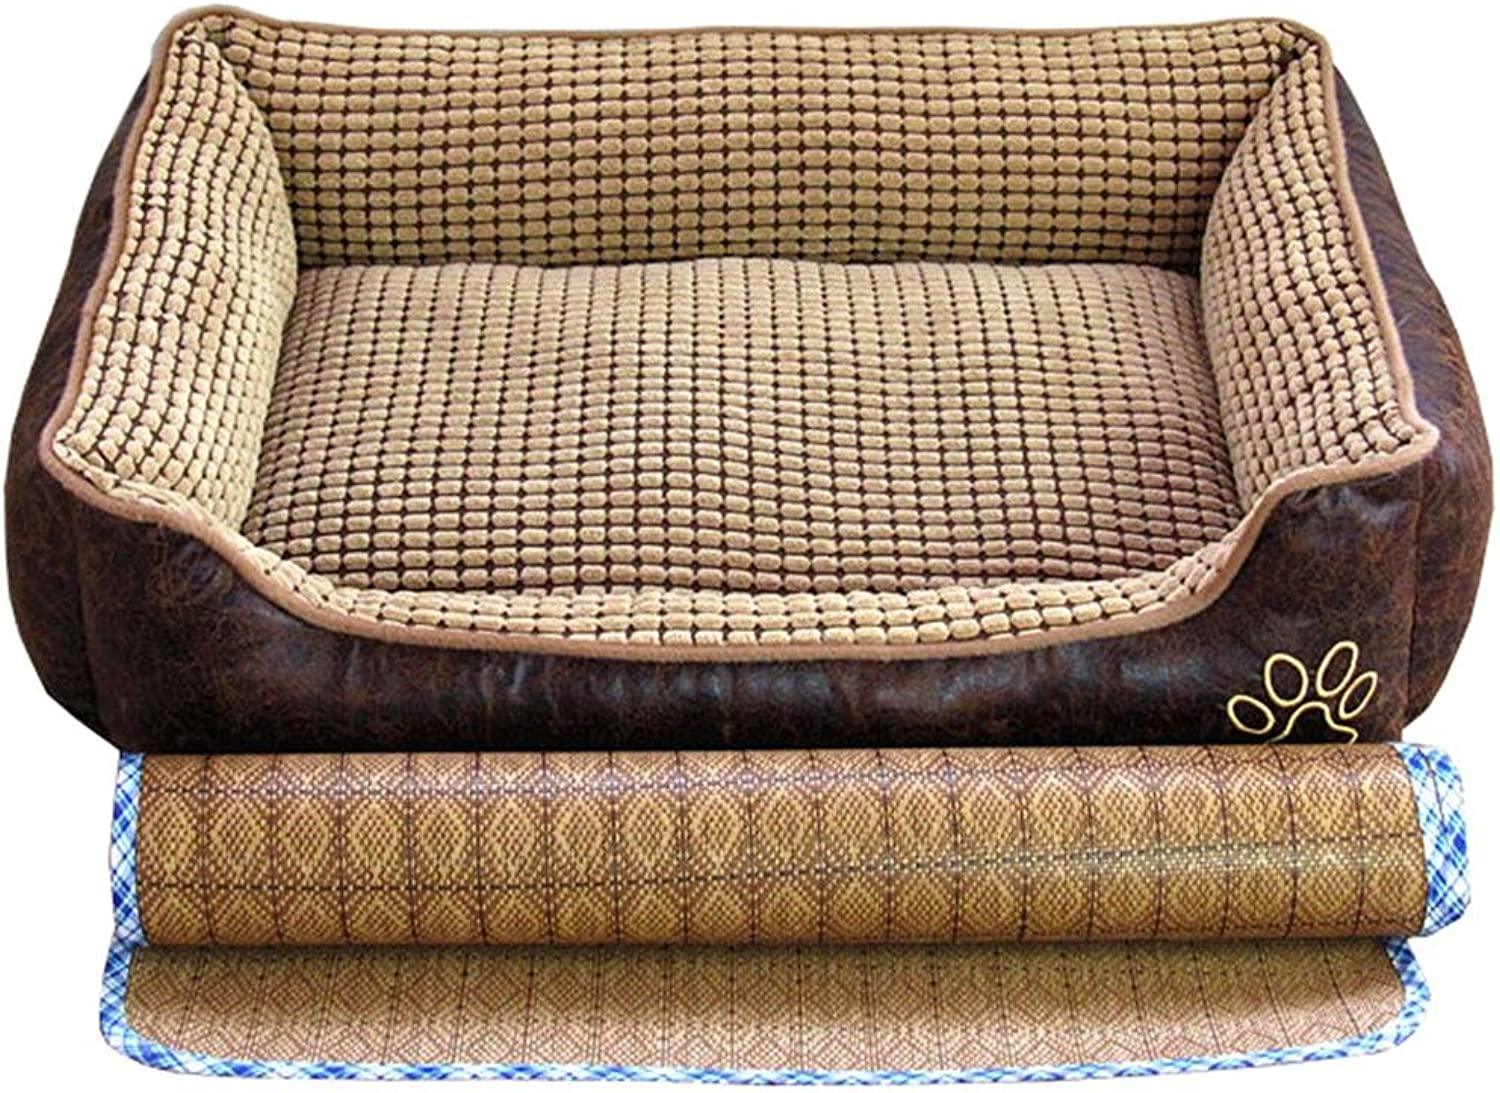 Dog Bed With Bamboo Mat For A Cool Summer, Durable Comfortable Materials Pet Thick Cushion, All Detachable Washable , coffee , xl